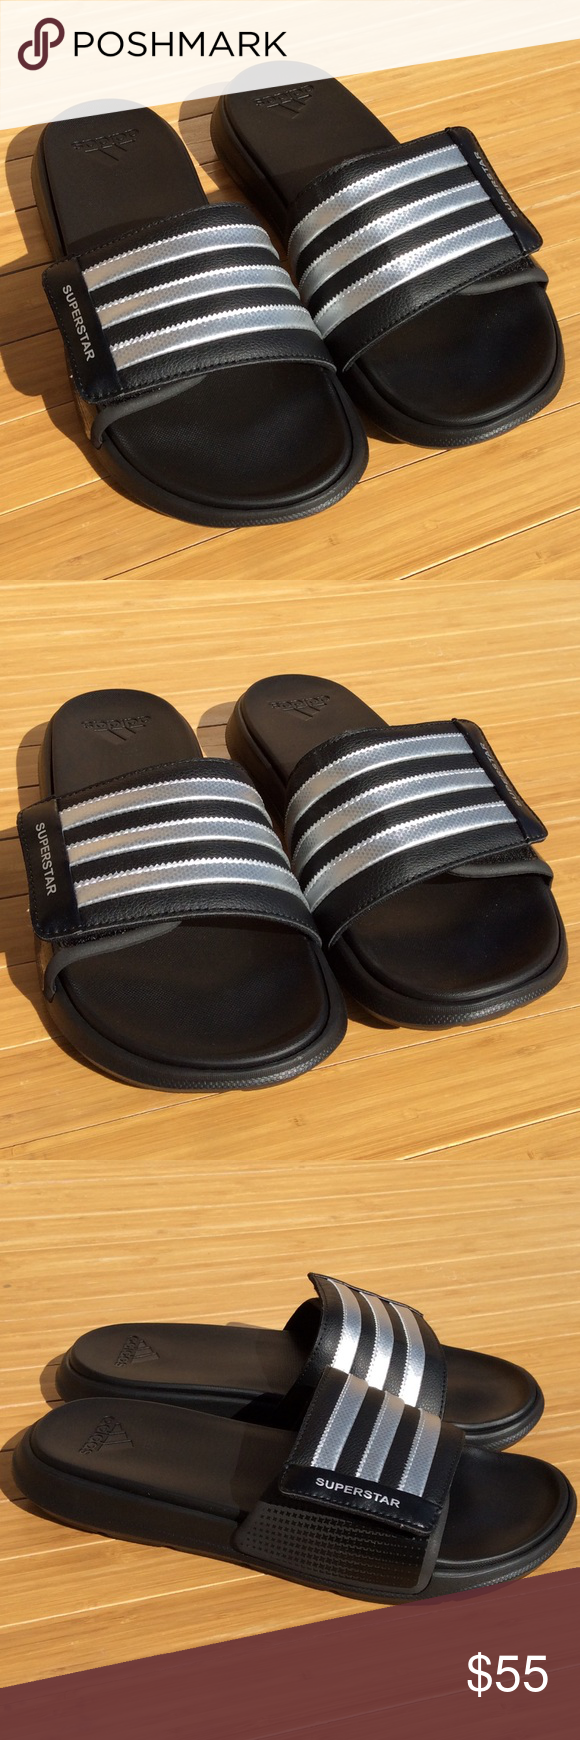 70c14c8239e8 Adidas SUPERSTAR 4G Slides Men s 11 Adidas SUPERSTAR 4G Slides Men s ...